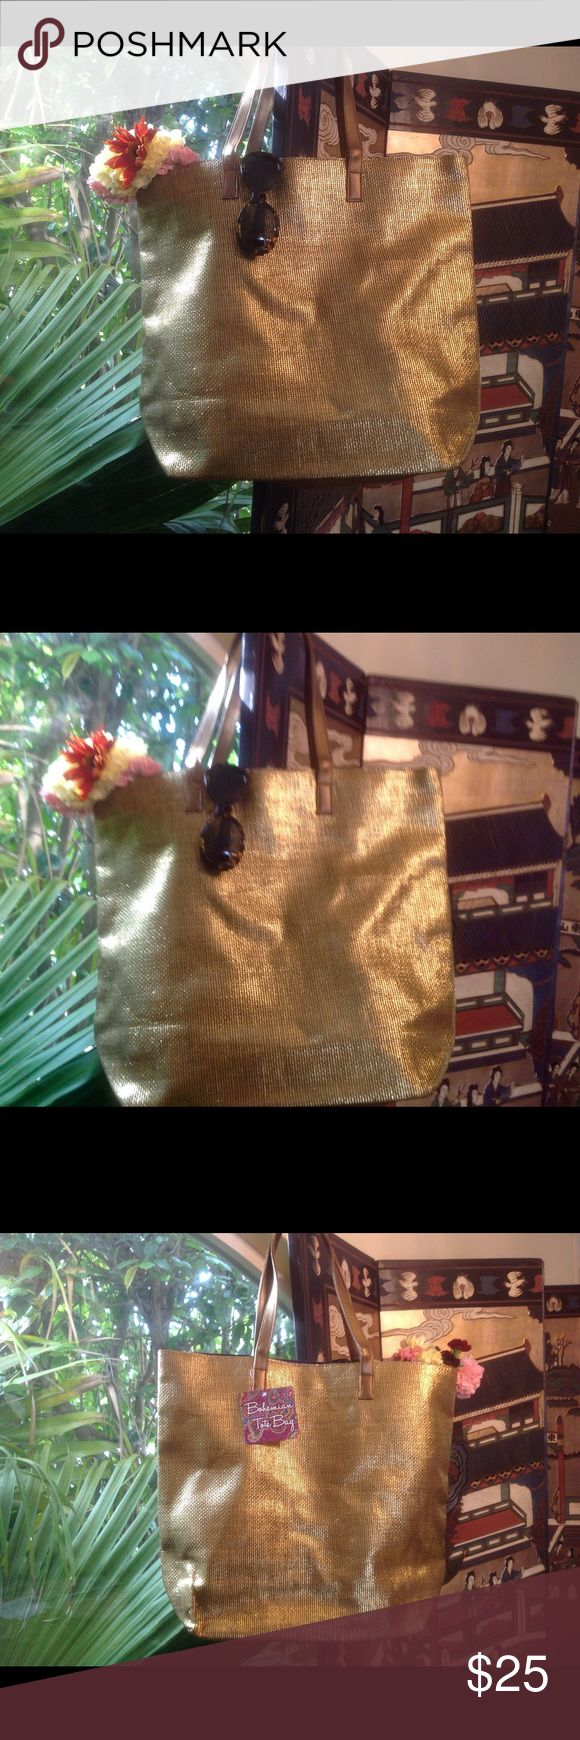 """Large gold tote bag ❤️ Beautiful large gold tote bag! ❤️ Perfect bag to put in all your beach necessities!👙☀️🎉💐🍧Fully lined with purple lining! ❤️ Inside pocket with zipper! ❤️ Brand new! ❤️ Dimensions: 17.5X15X5.5 inches with 2 handles 20"""" each! ❤️ Priced to sell! ❤️ Bohemian Tote Bags Totes"""